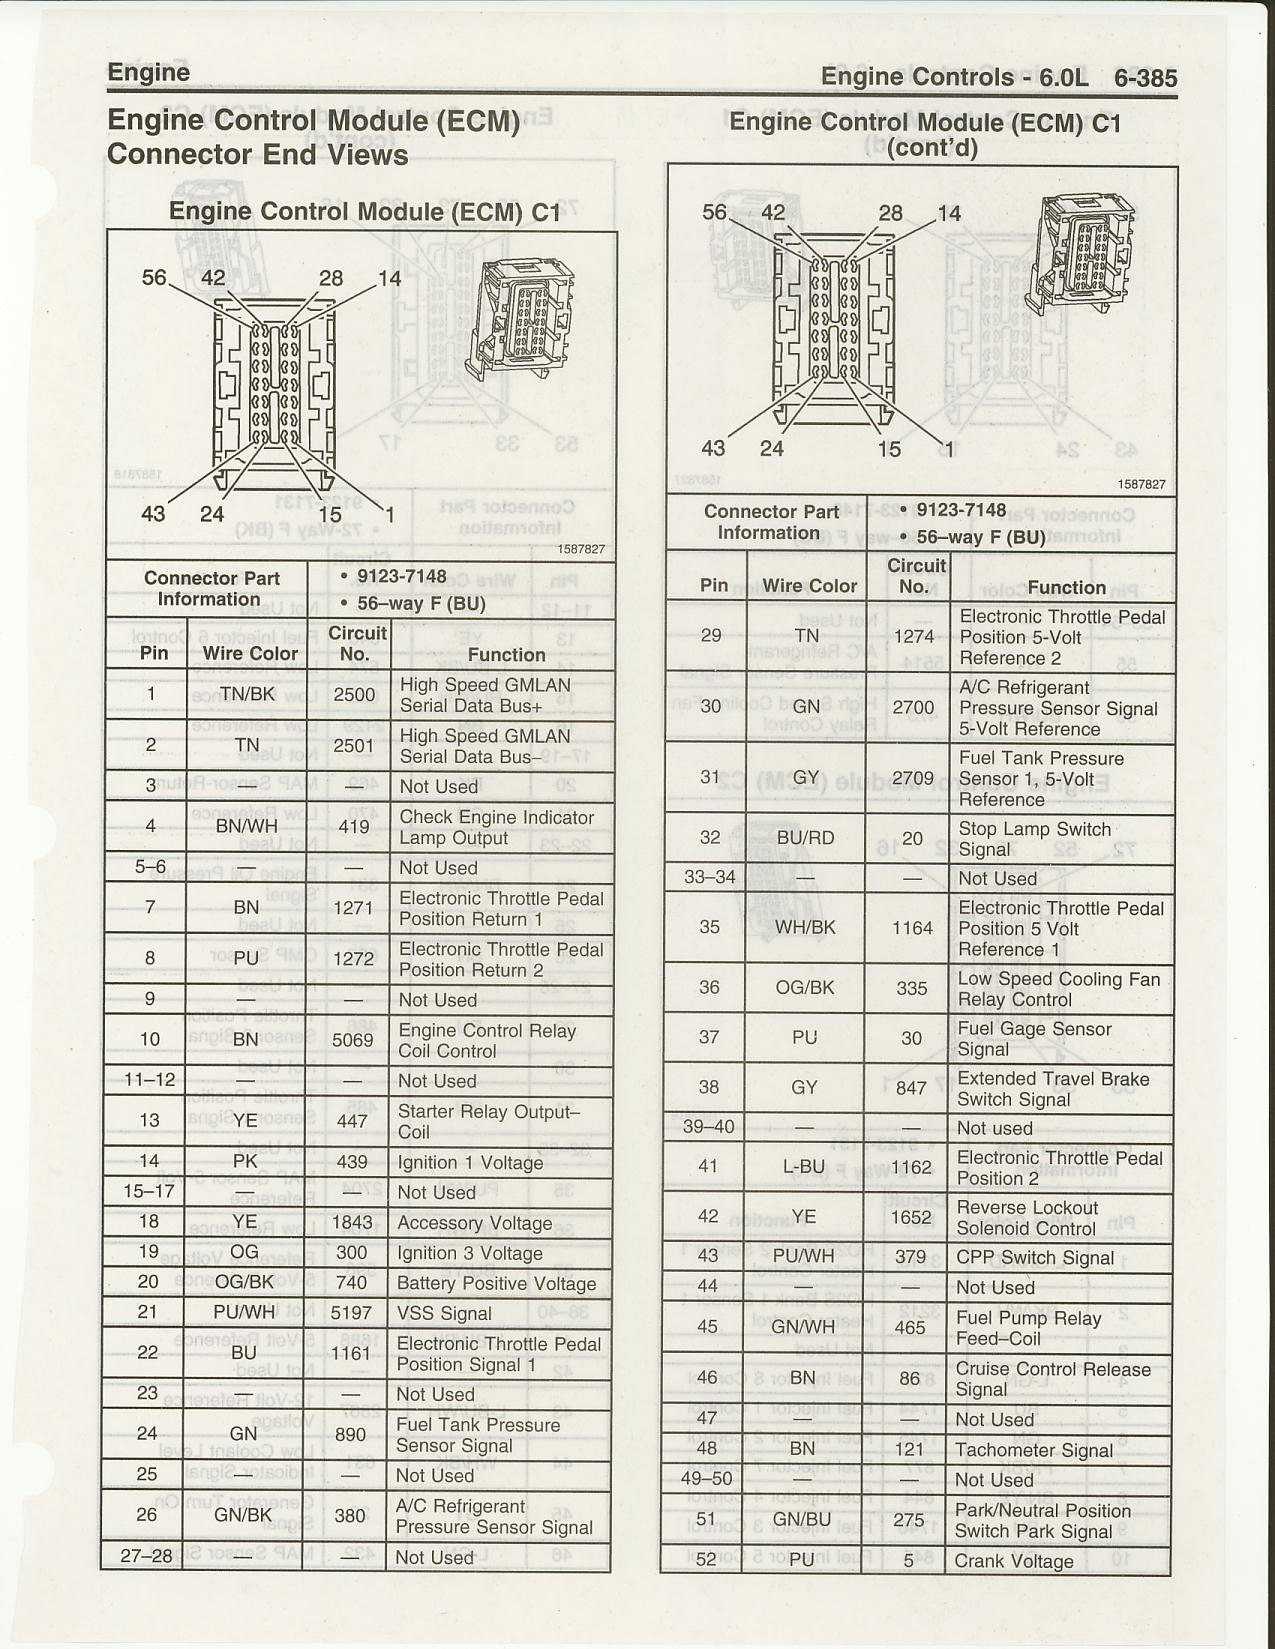 enginecontrols07 e67 wiring diagram smart car diagrams \u2022 wiring diagrams j squared co 1998 Corvette Chassis Wiring Diagram at crackthecode.co